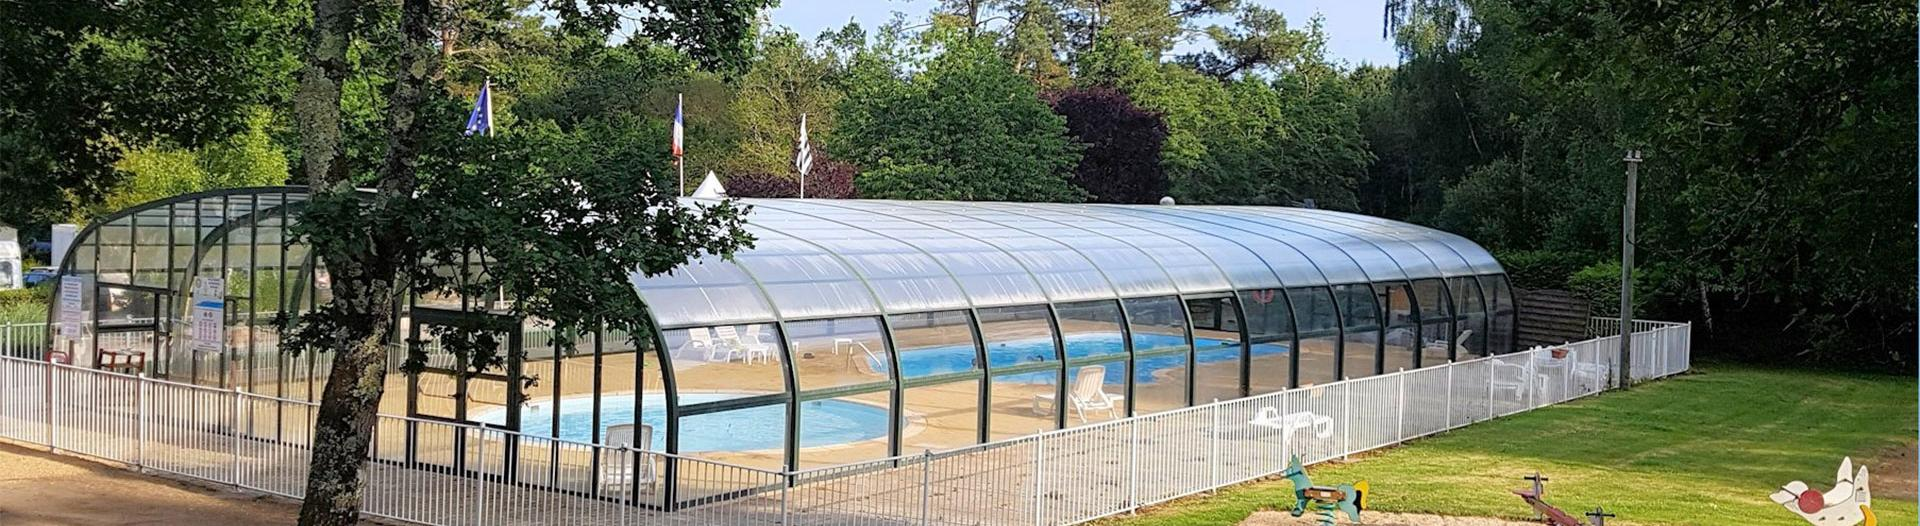 slider-camping-saint-laurent-ploemel-piscine-couverte